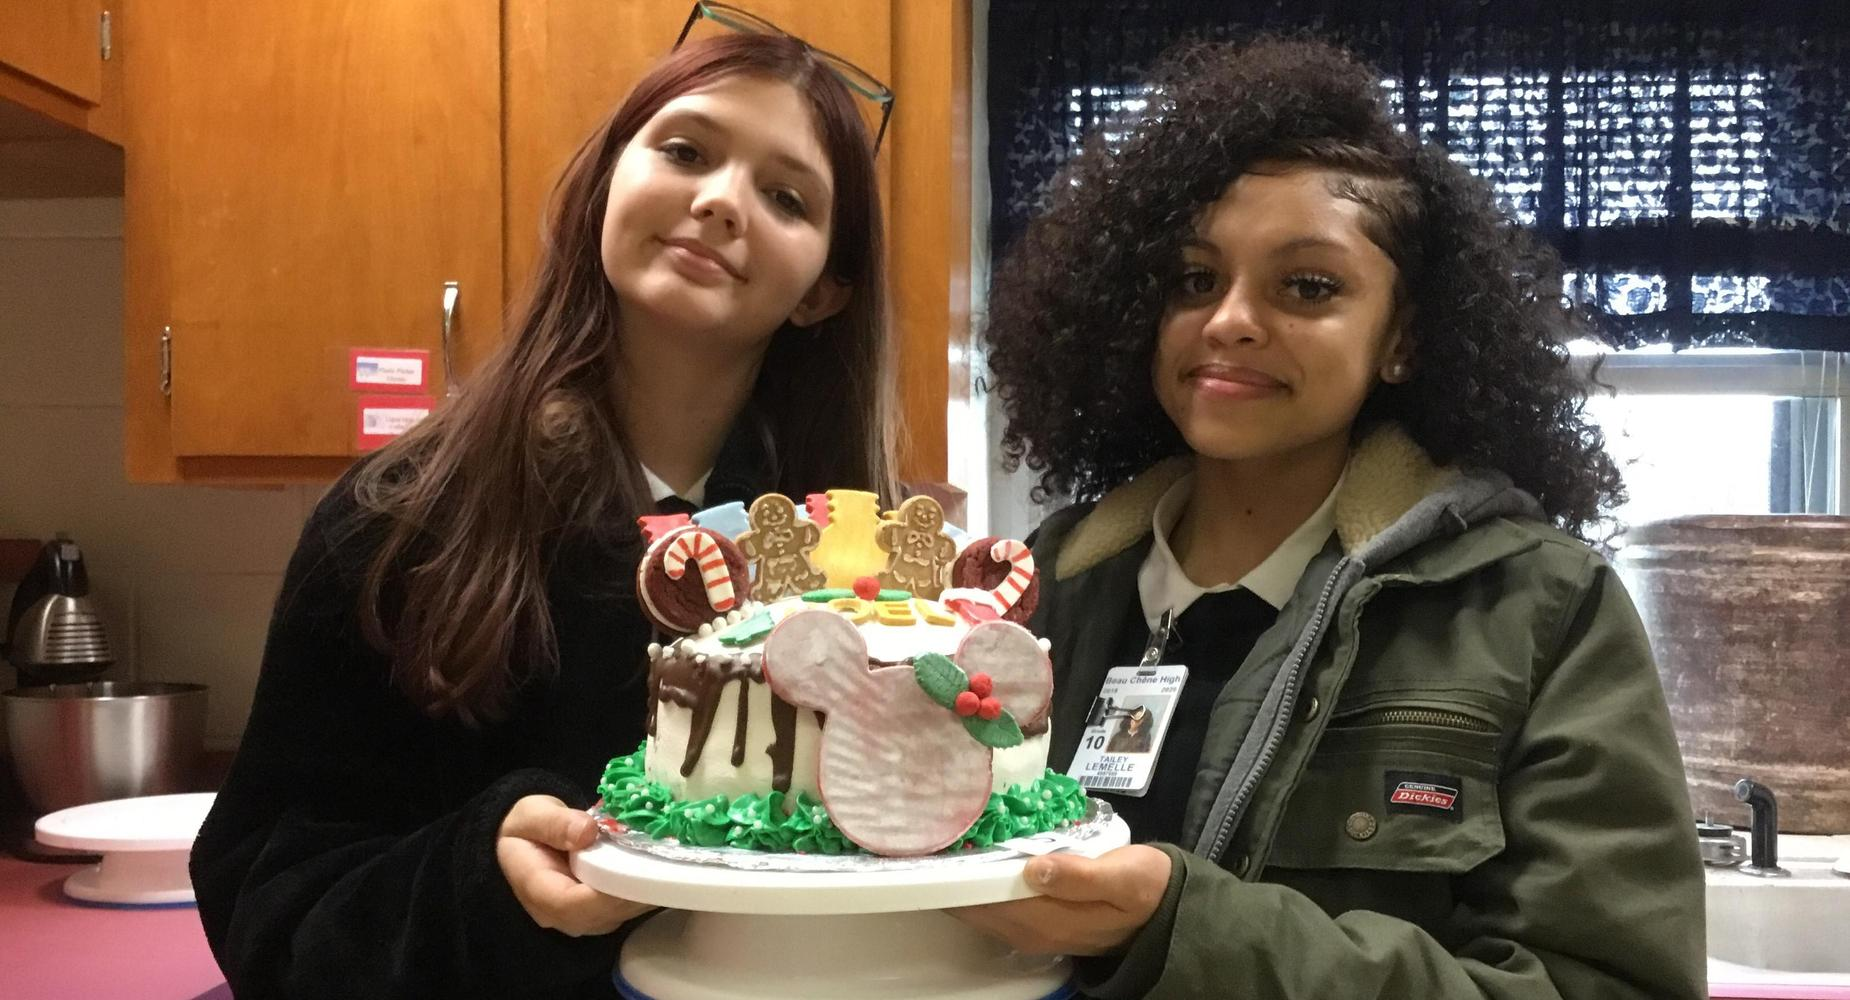 Advanced Nutrition & Foods classes designed, baked and decorated their own cakes.   Tailey L. and Makayla designed and decorate their own cake.